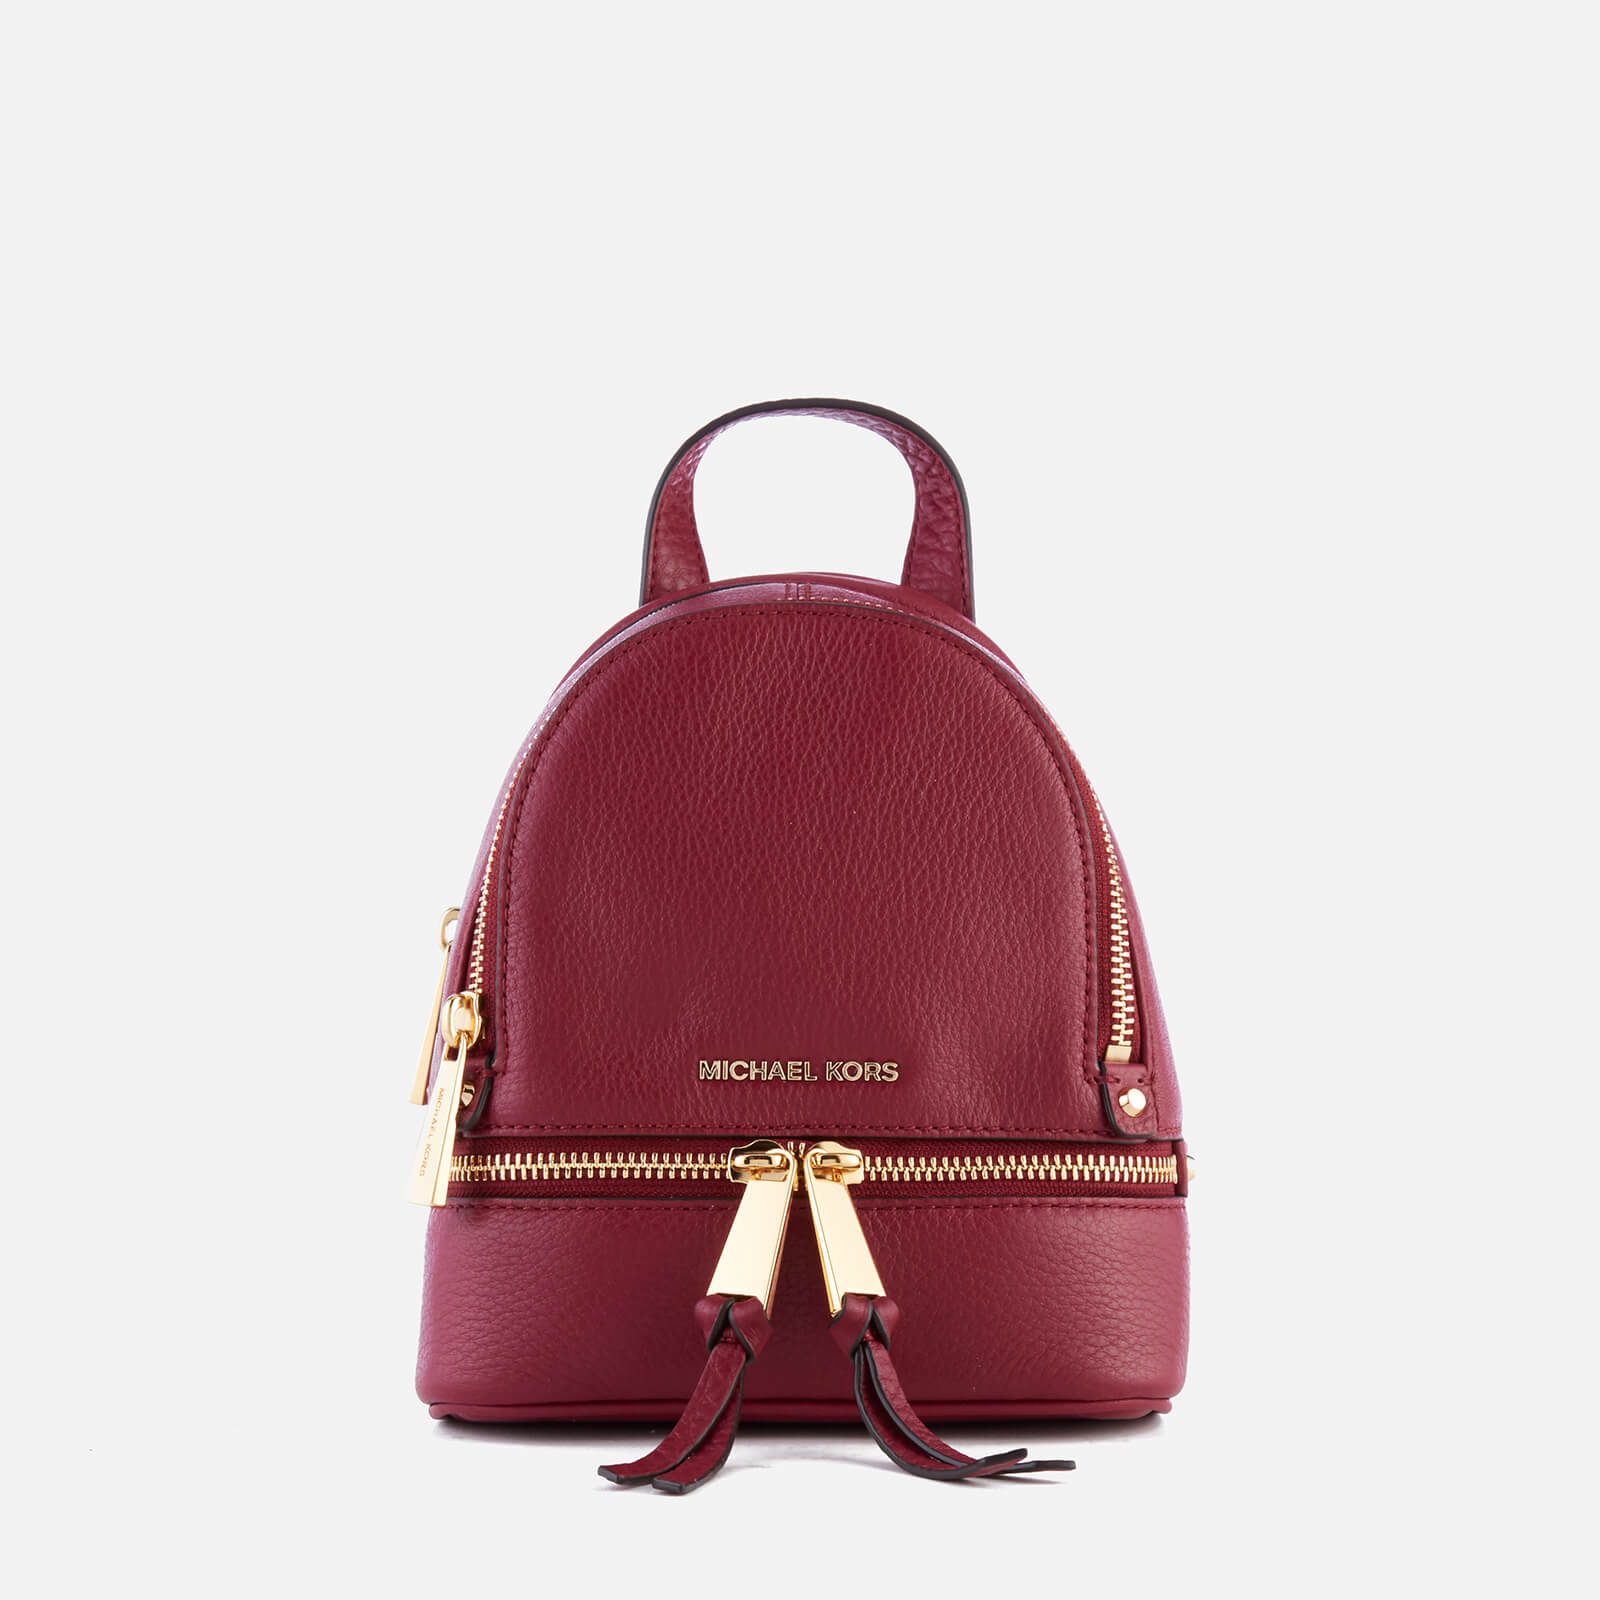 5f2e1435babd MICHAEL MICHAEL KORS Women s Rhea Zip Extra Small Messenger Backpack -  Mulberry - Free UK Delivery over £50